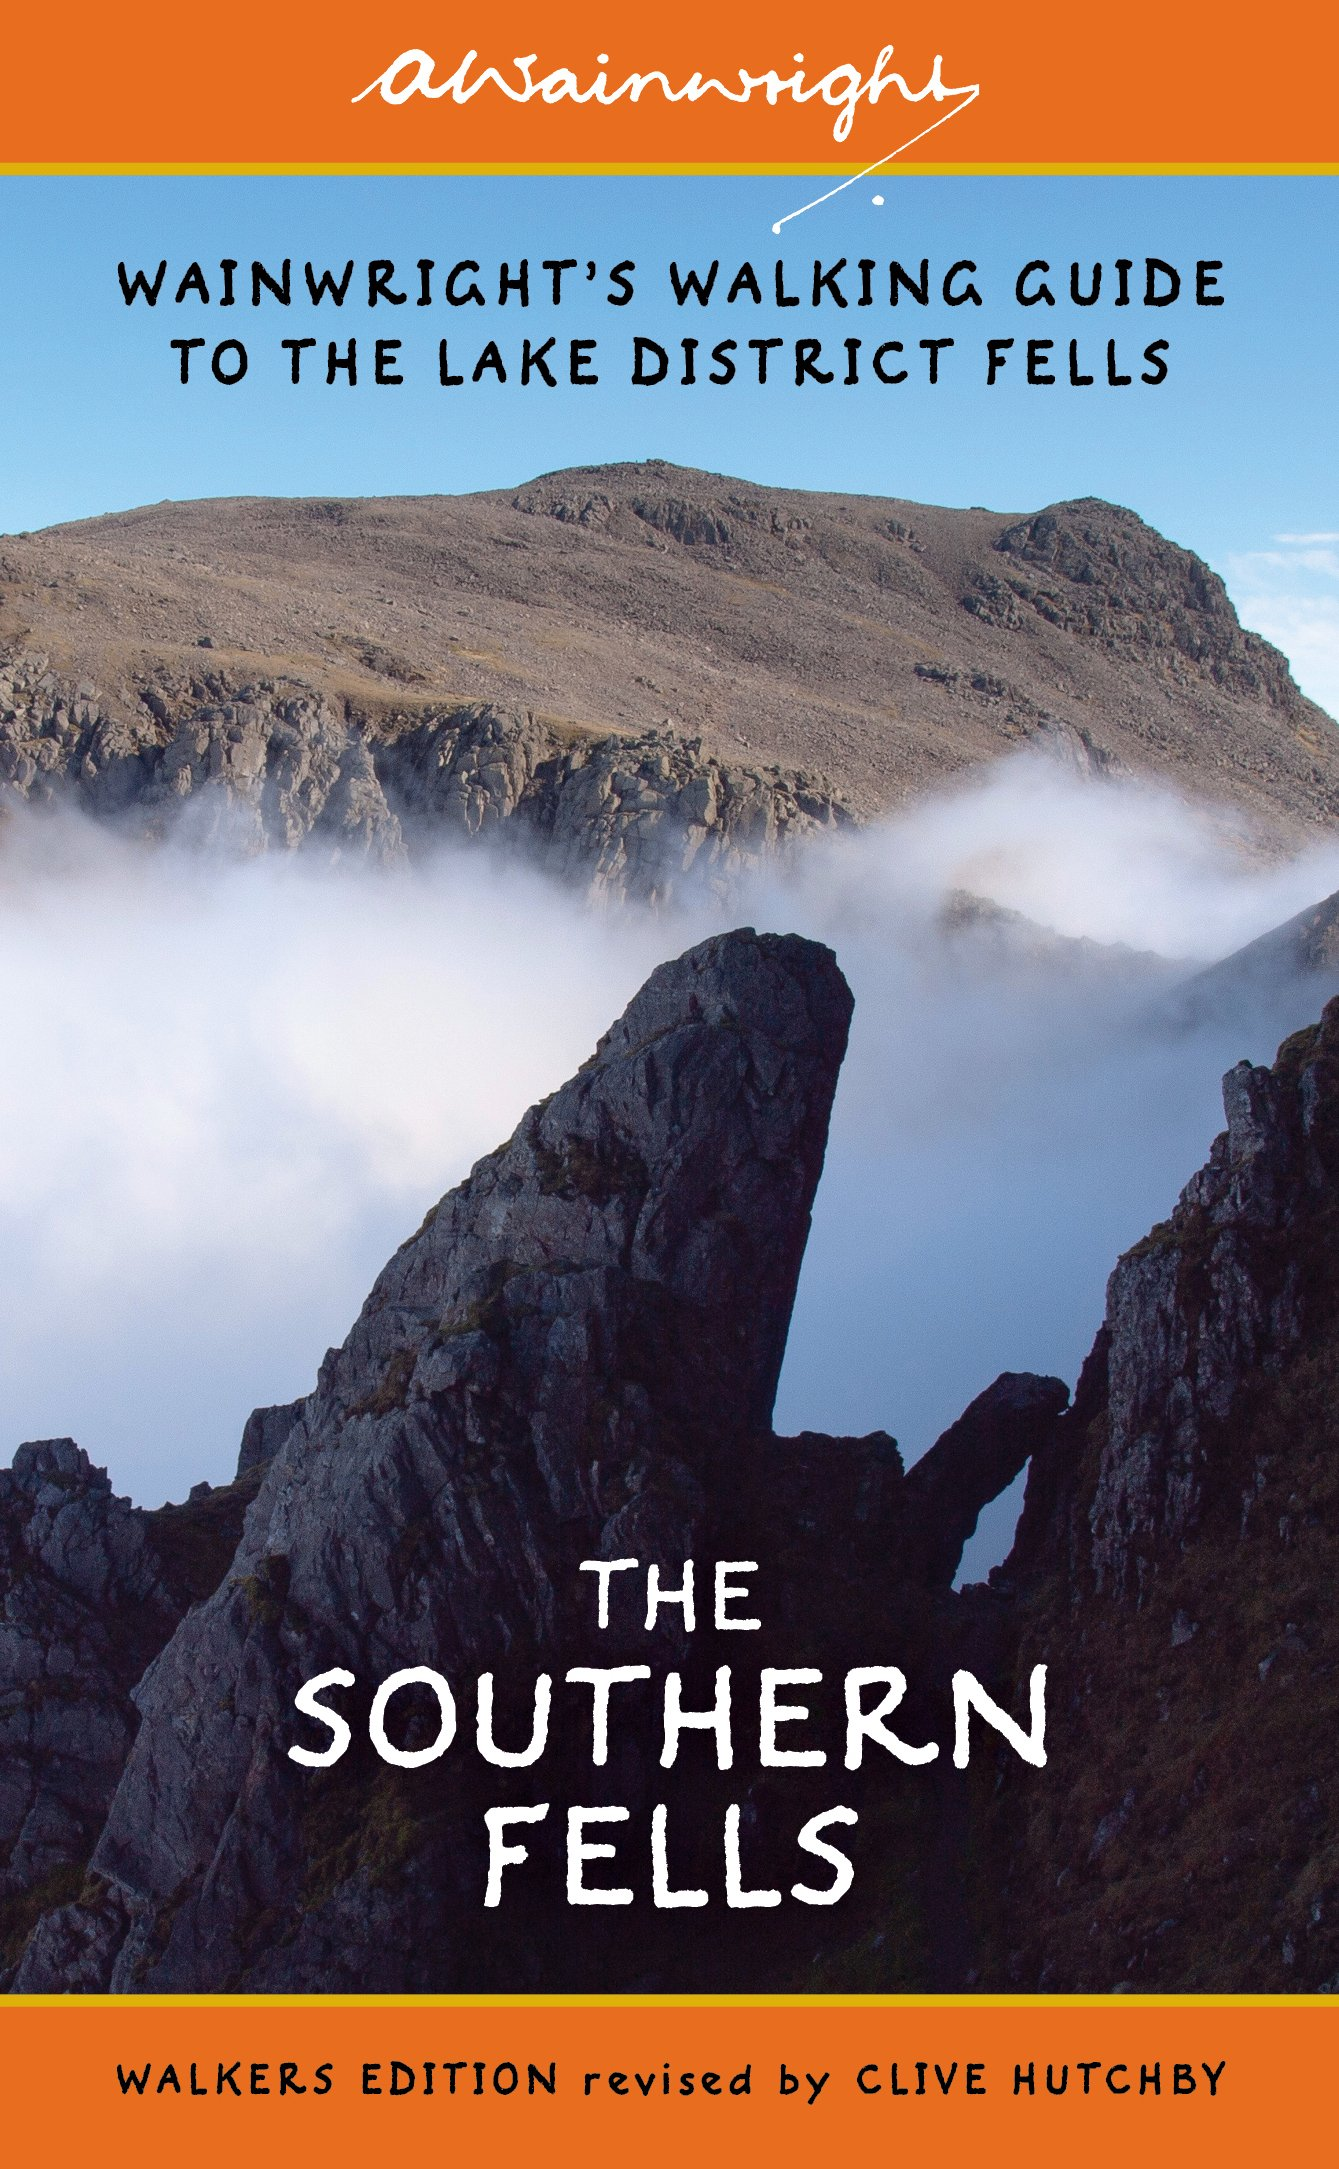 Download Wainwright's Illustrated Walking Guide to the Lake District Book 4: The Southern Fells (Wainwright Walkers Edition) PDF